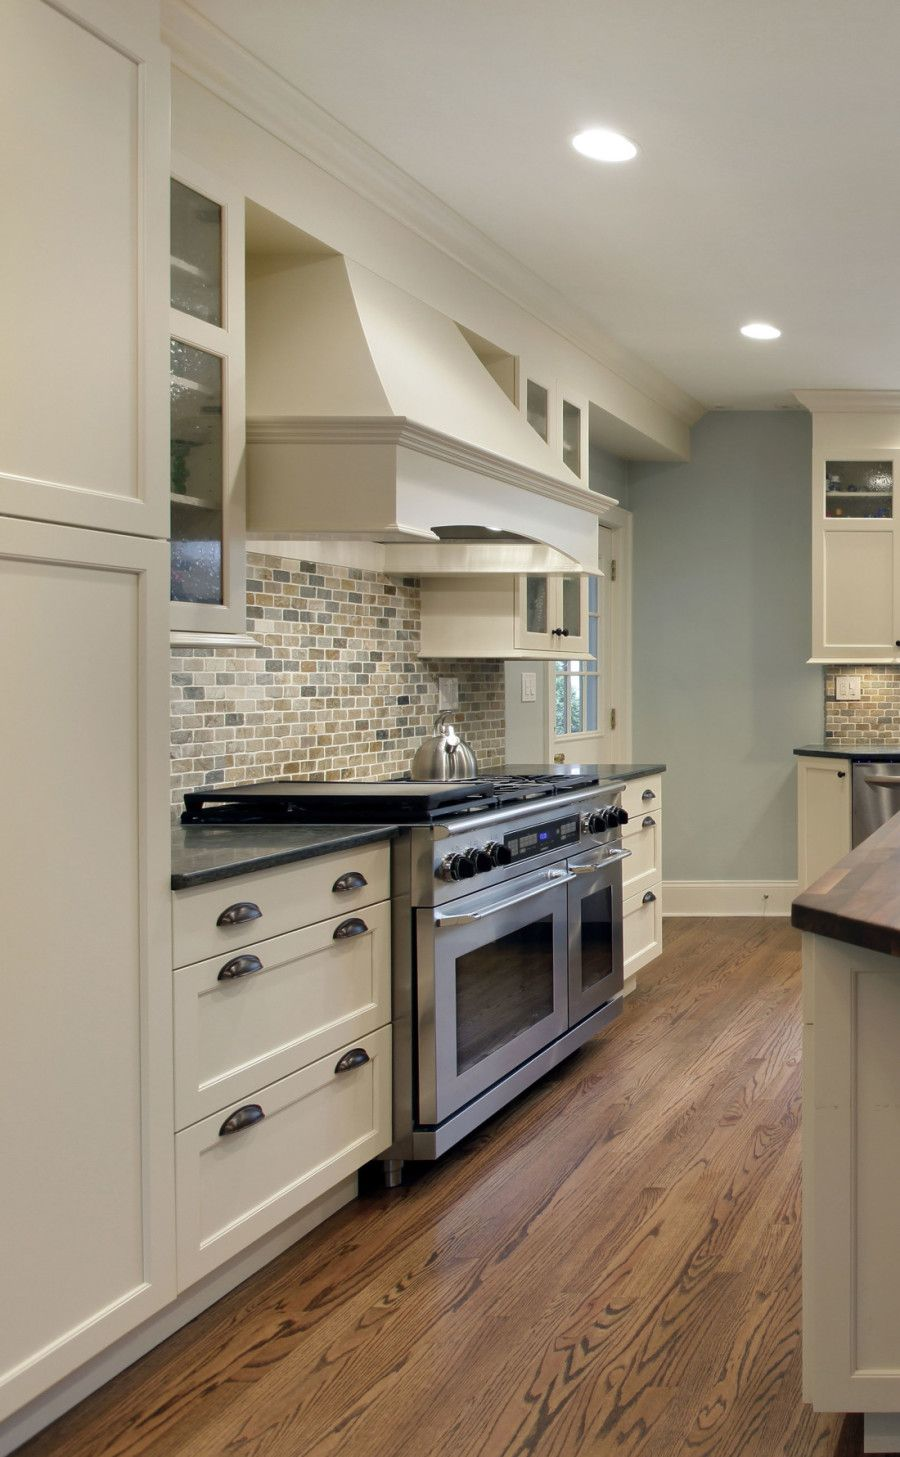 Replacing Kitchen Countertops Stainless Steel Shelf With Hooks Design Ideas | H O U S E Design, ...